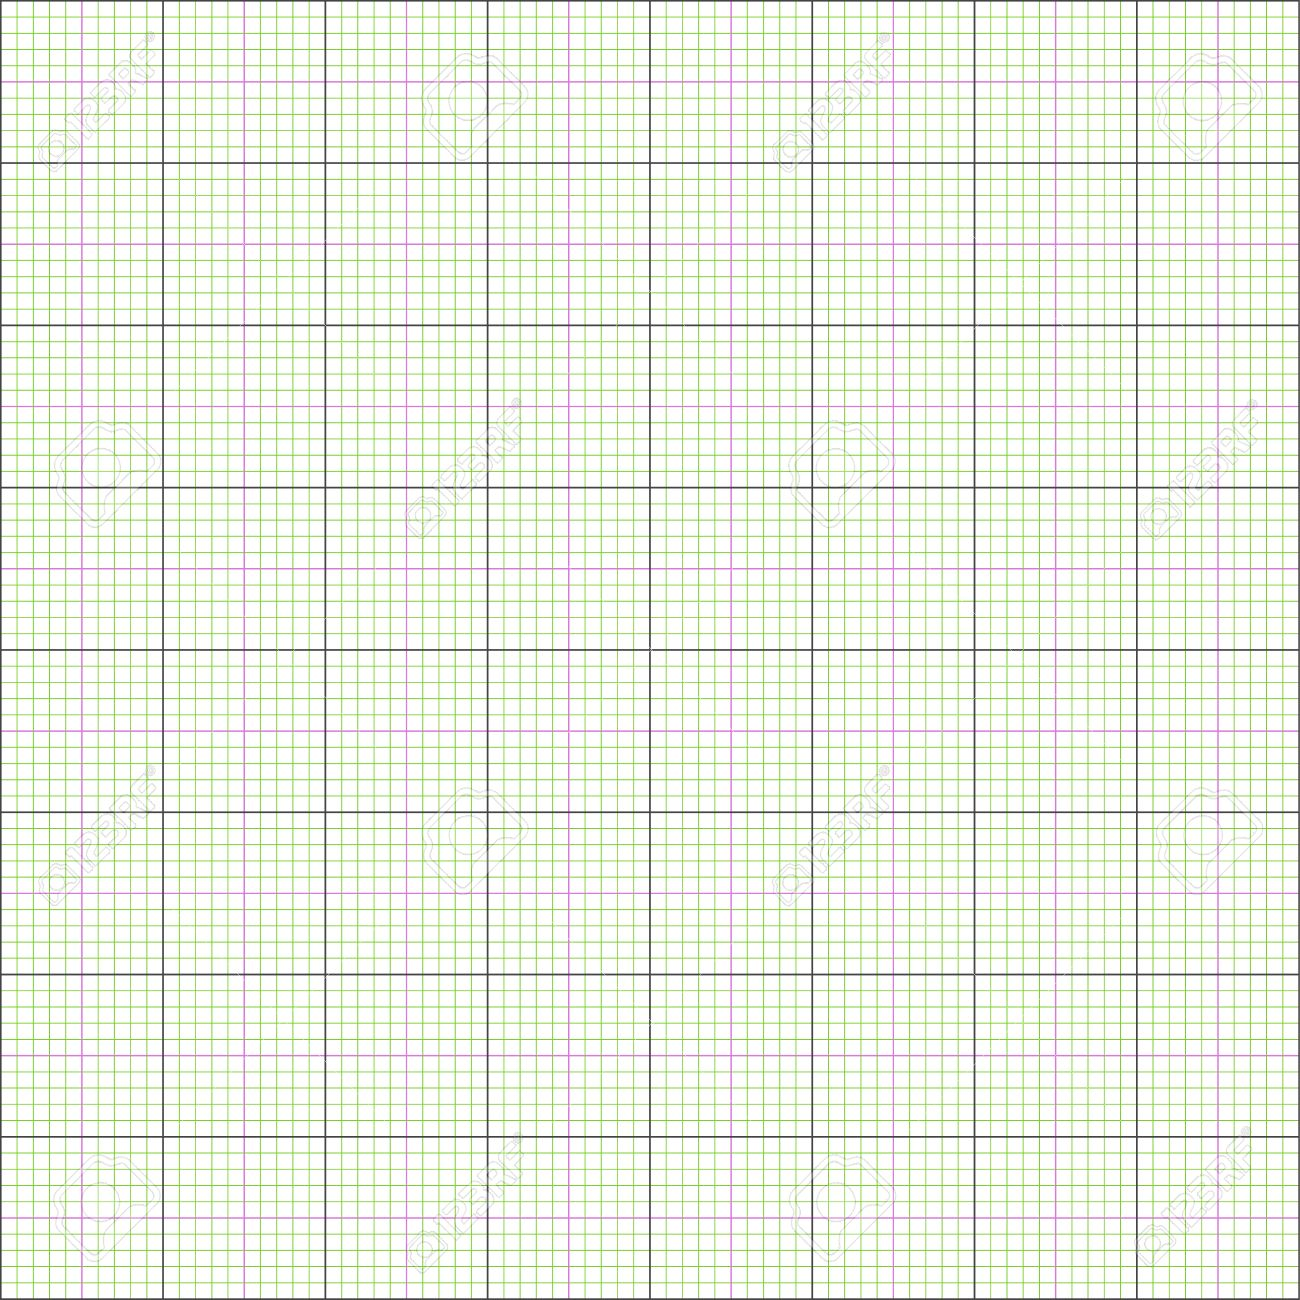 graph paper grid background 2d illustration vector eps 8